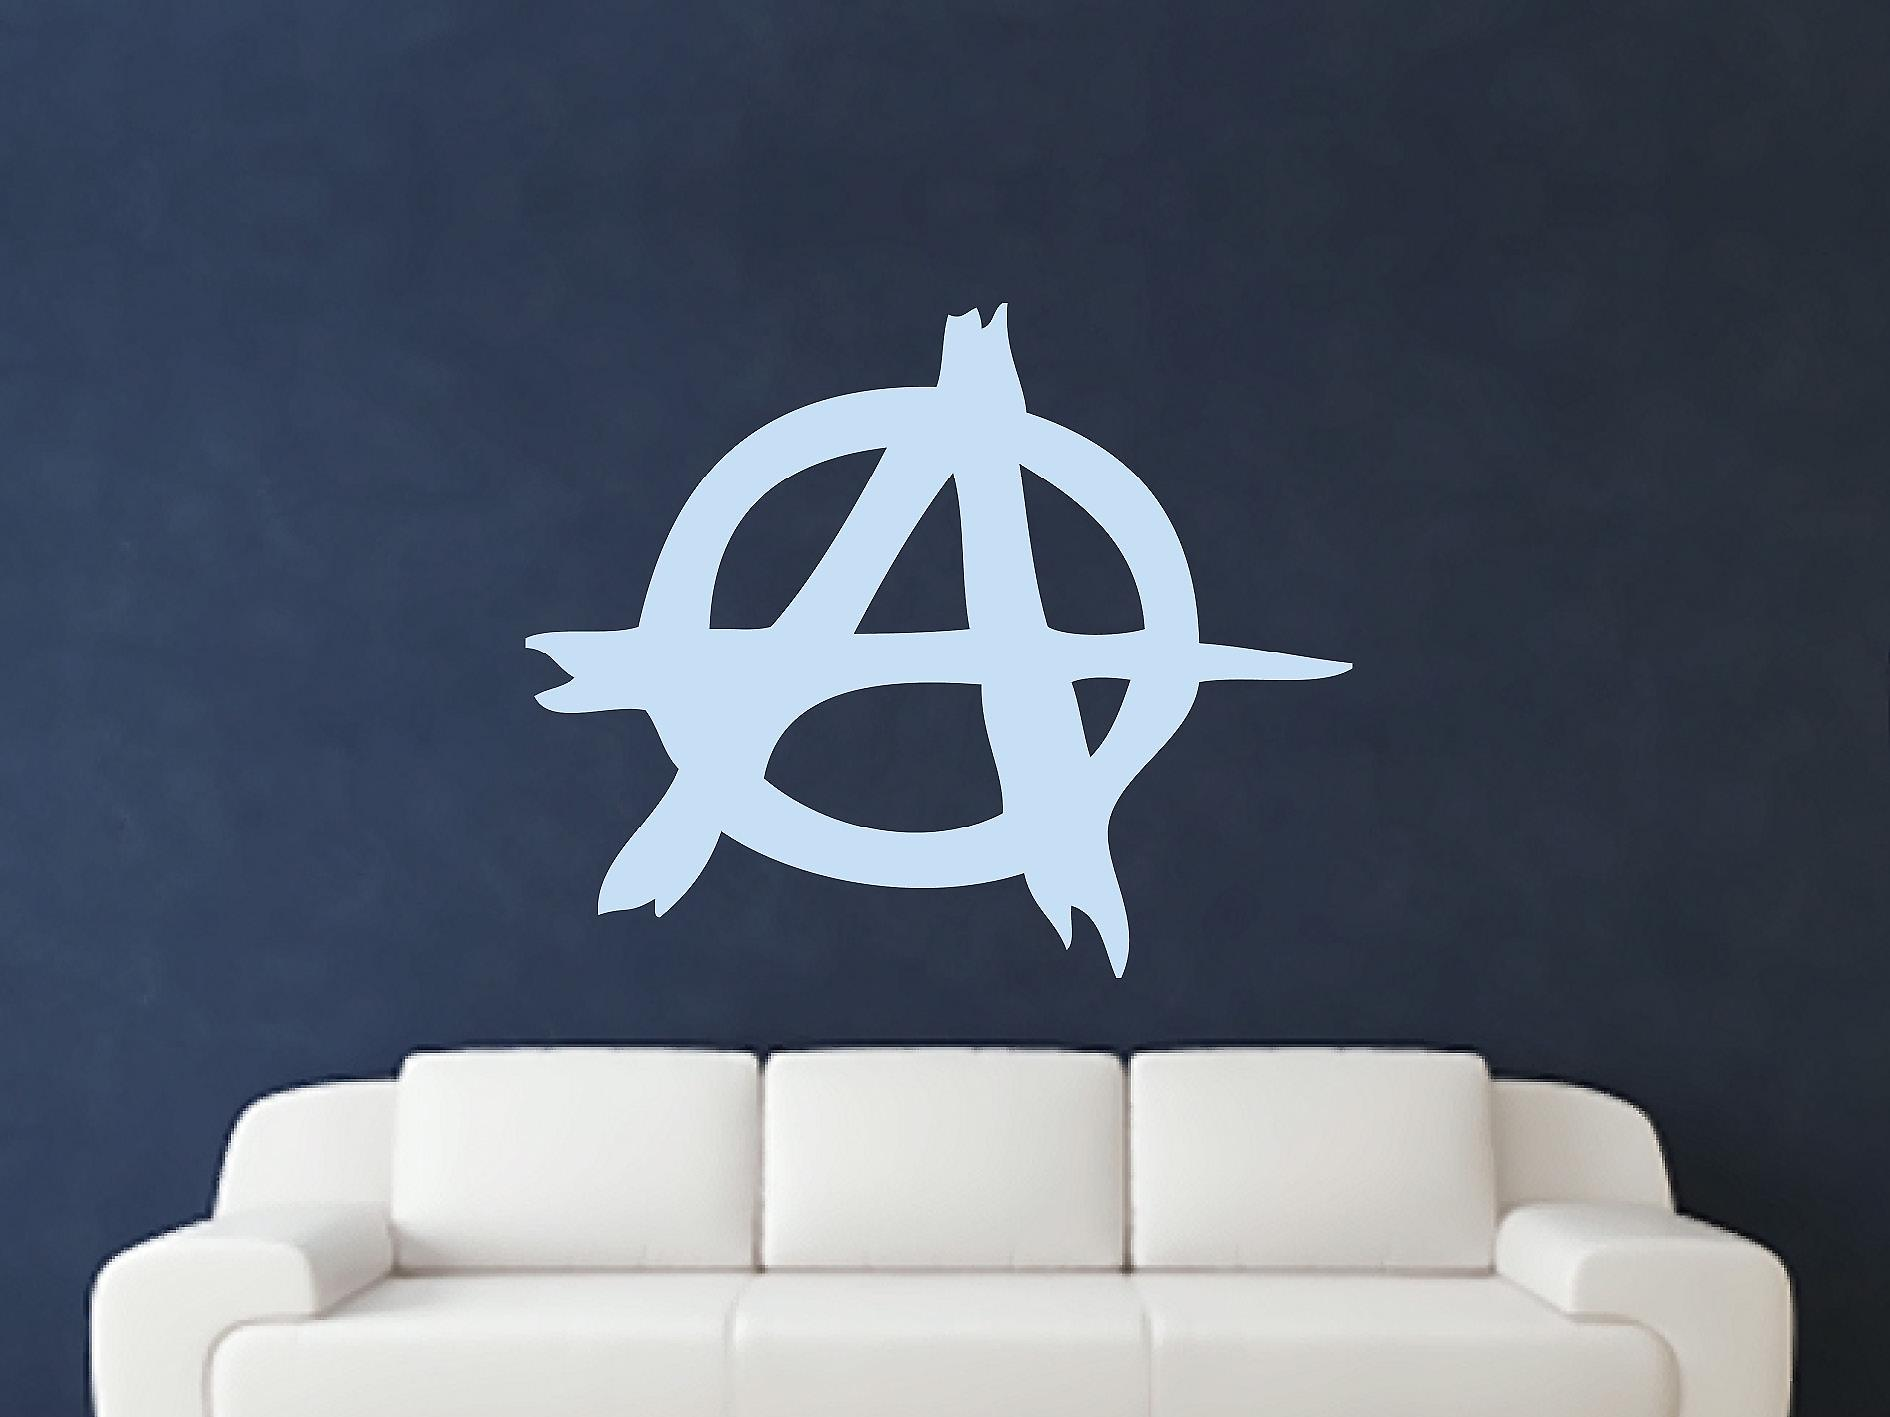 Anarchy Symbol Wall Art Sticker - Pastel Blue